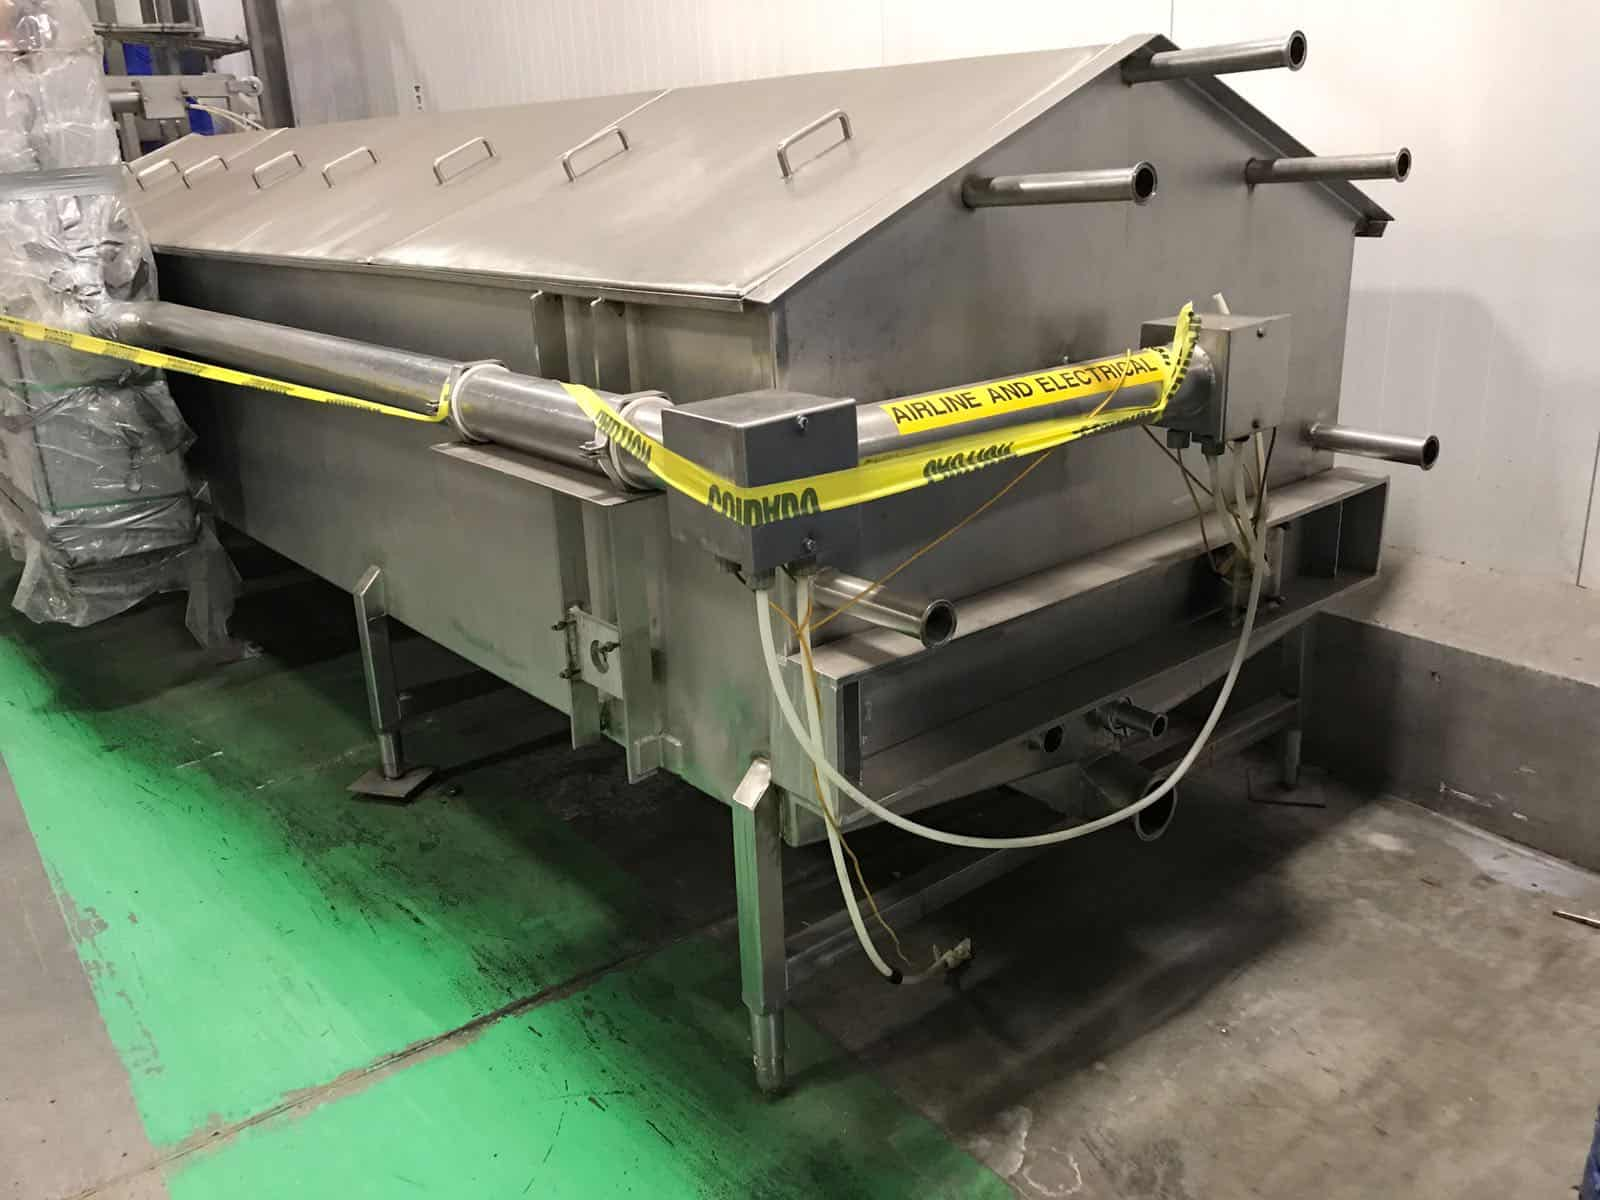 """Viking Hydra-Form Mozzarella Block Molder/Chiller System, S/N 97-036-RH, with Allen Bradley Panel View Plus 1000 Controls & 5/30 PLC. 54"""" Wide Chill Tank, Tank Length for Chilling is 22' Lonf, Operational Width-Turning End with Cylinder 9' Long, Including Lift/Drop Area. Operational Width at Fill End 9'. Operational Length with Infeed & Discharge Shuttles is 35' Long, Molding Section is 80"""" Long, Dual Auger All S/S. Molder Extruder Extends 48"""" from Side at Filling End. (Located in California) ***RLF***"""